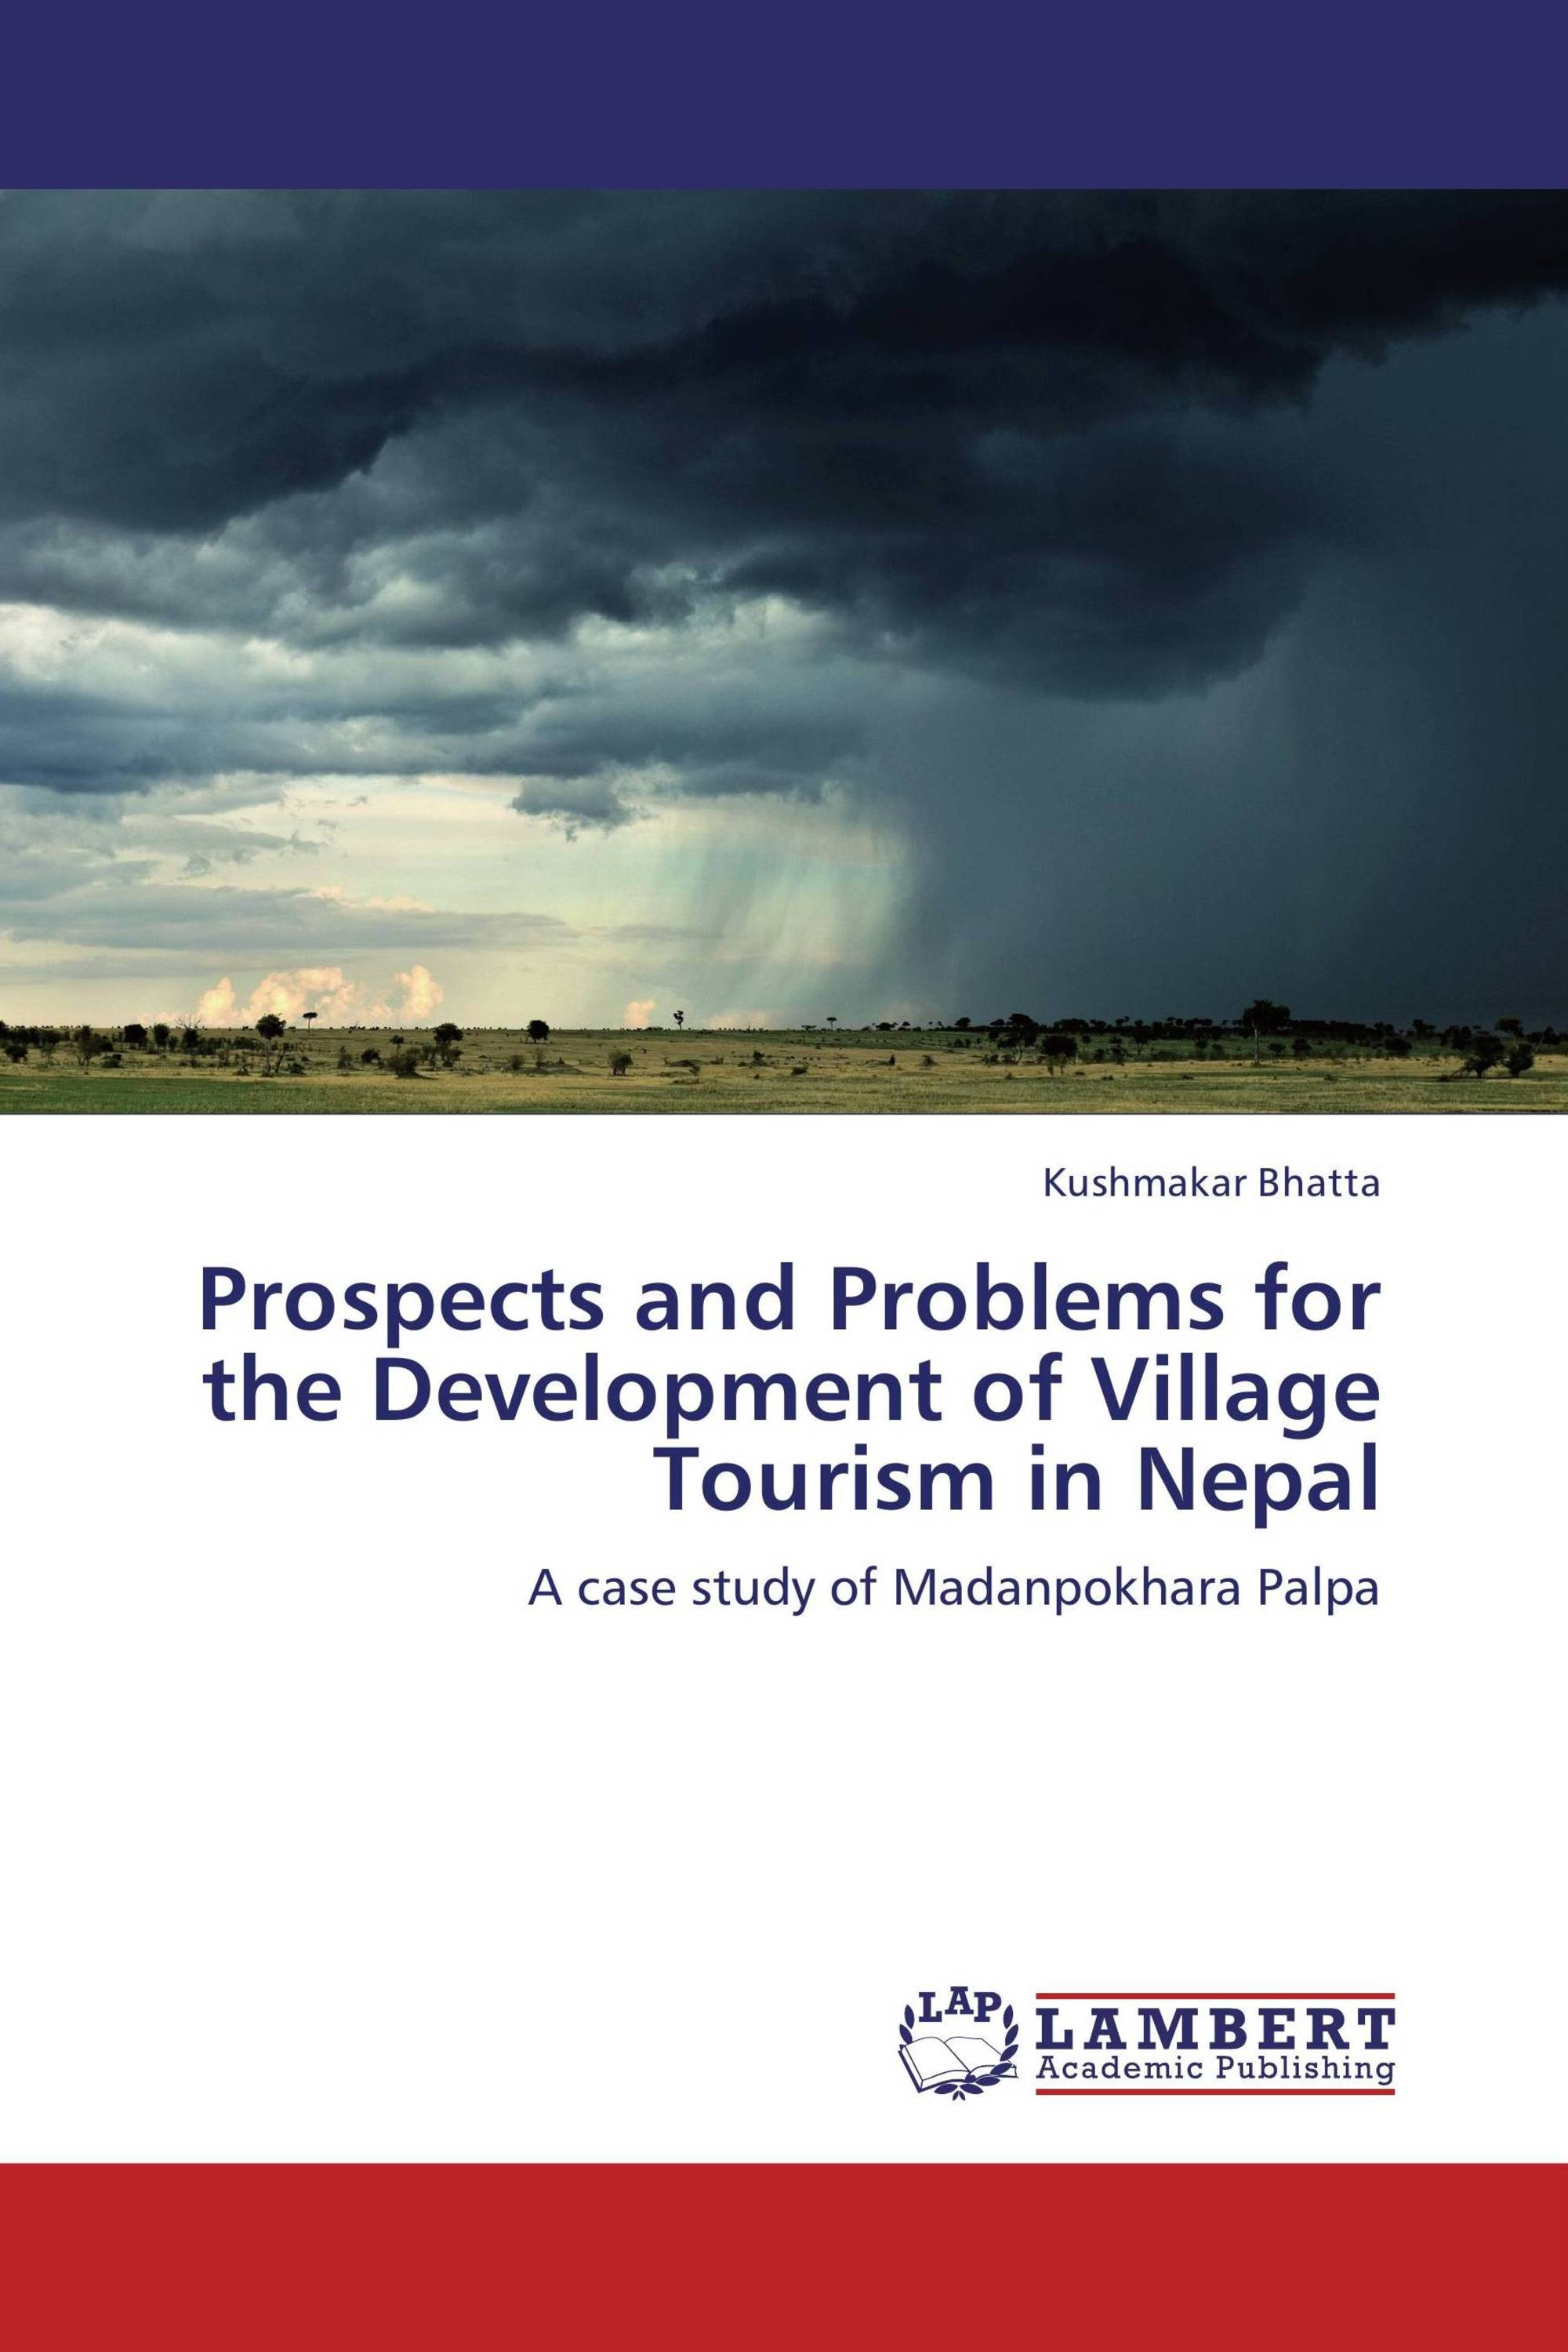 Prospects and Problems for the Development of Village Tourism in